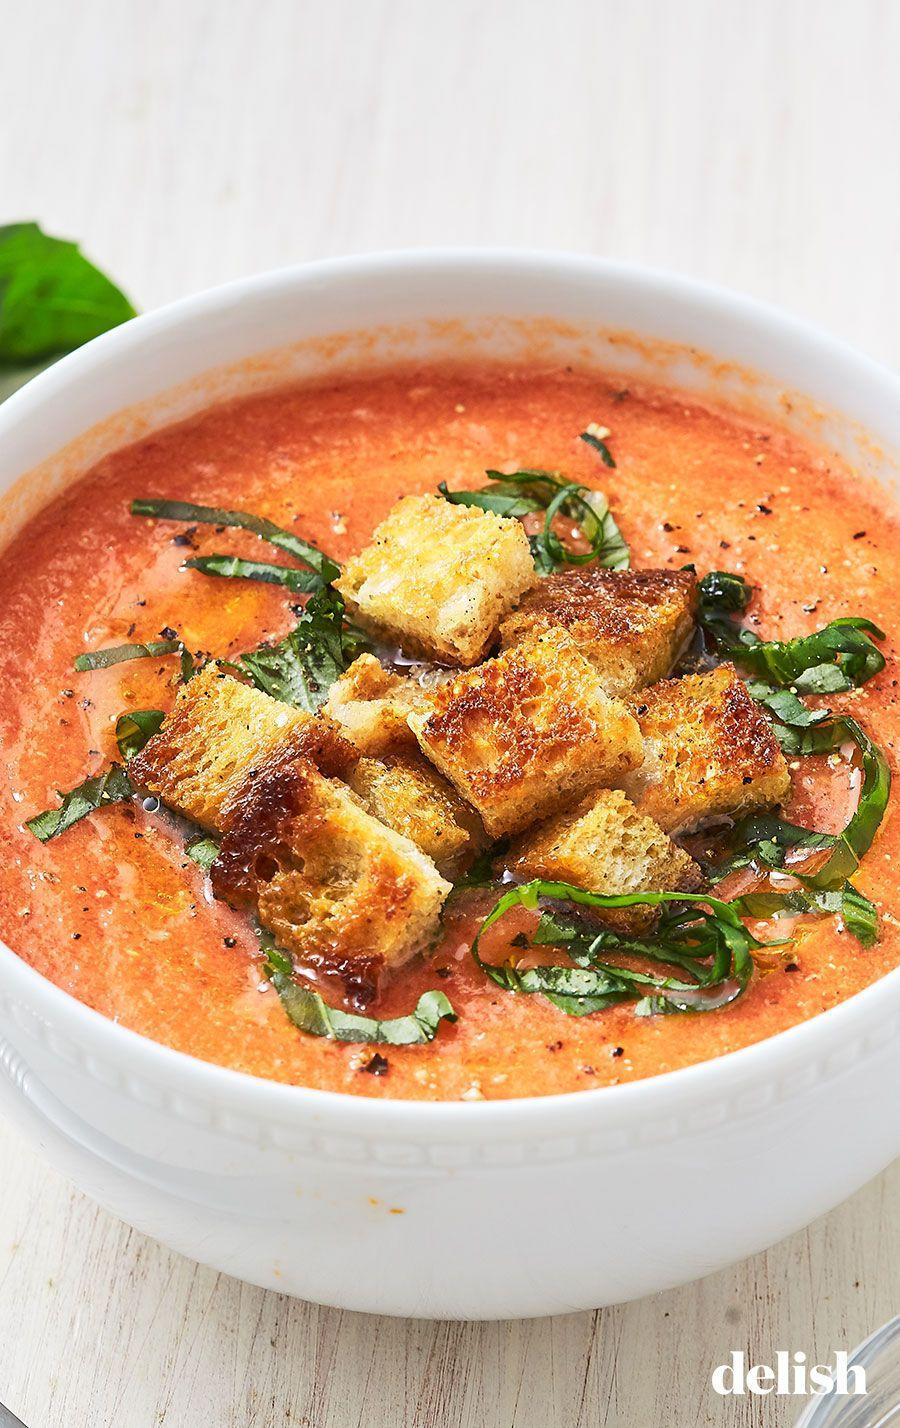 "<p>Is it, uh, bad form to chug it straight from the bowl? Cause this gazpacho <em>that</em> good.</p><p>Get the recipe from <a href=""https://www.delish.com/cooking/recipe-ideas/a27794655/easy-gazpacho-soup-recipe/"" rel=""nofollow noopener"" target=""_blank"" data-ylk=""slk:Delish"" class=""link rapid-noclick-resp"">Delish</a>.</p>"